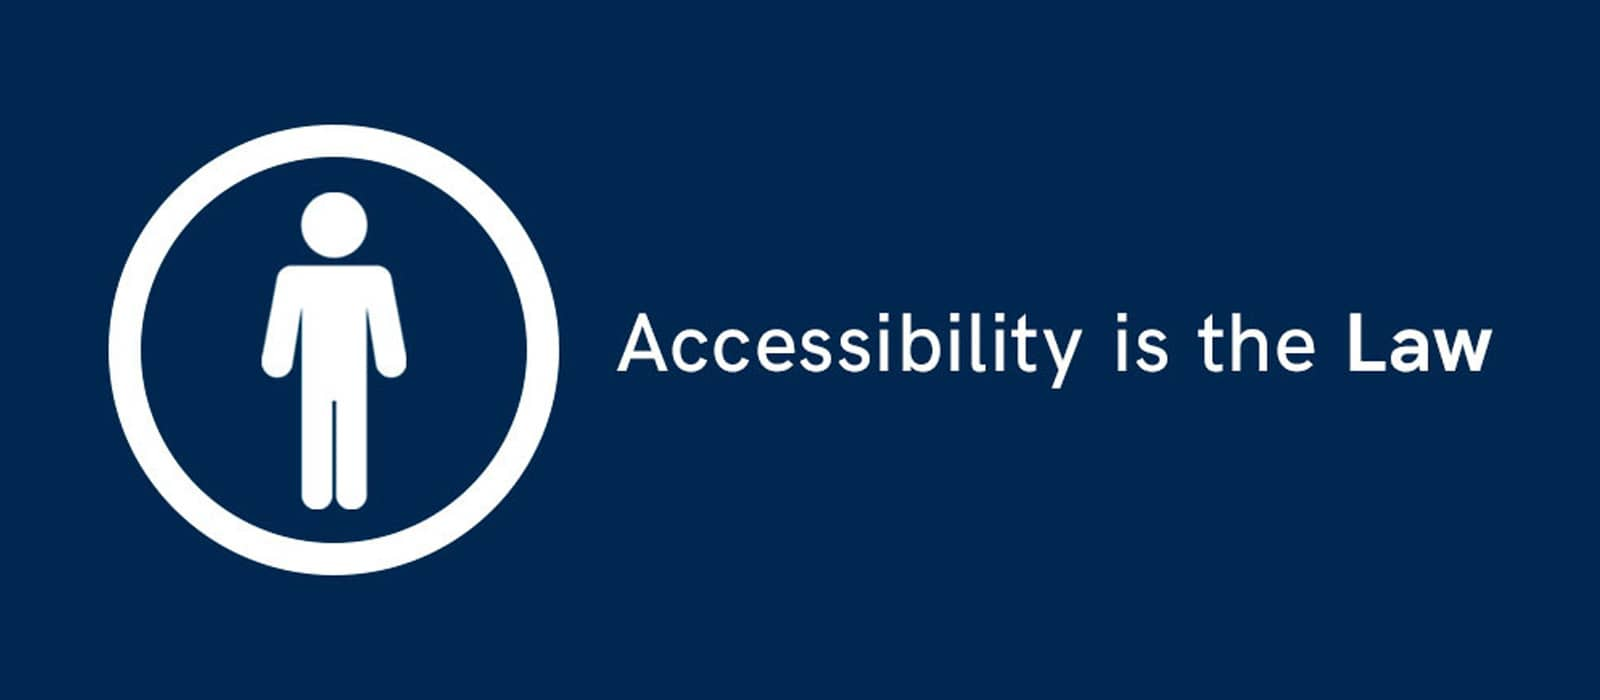 Top 5 Tips & Guidelines to Improve Your Website's Accessibility